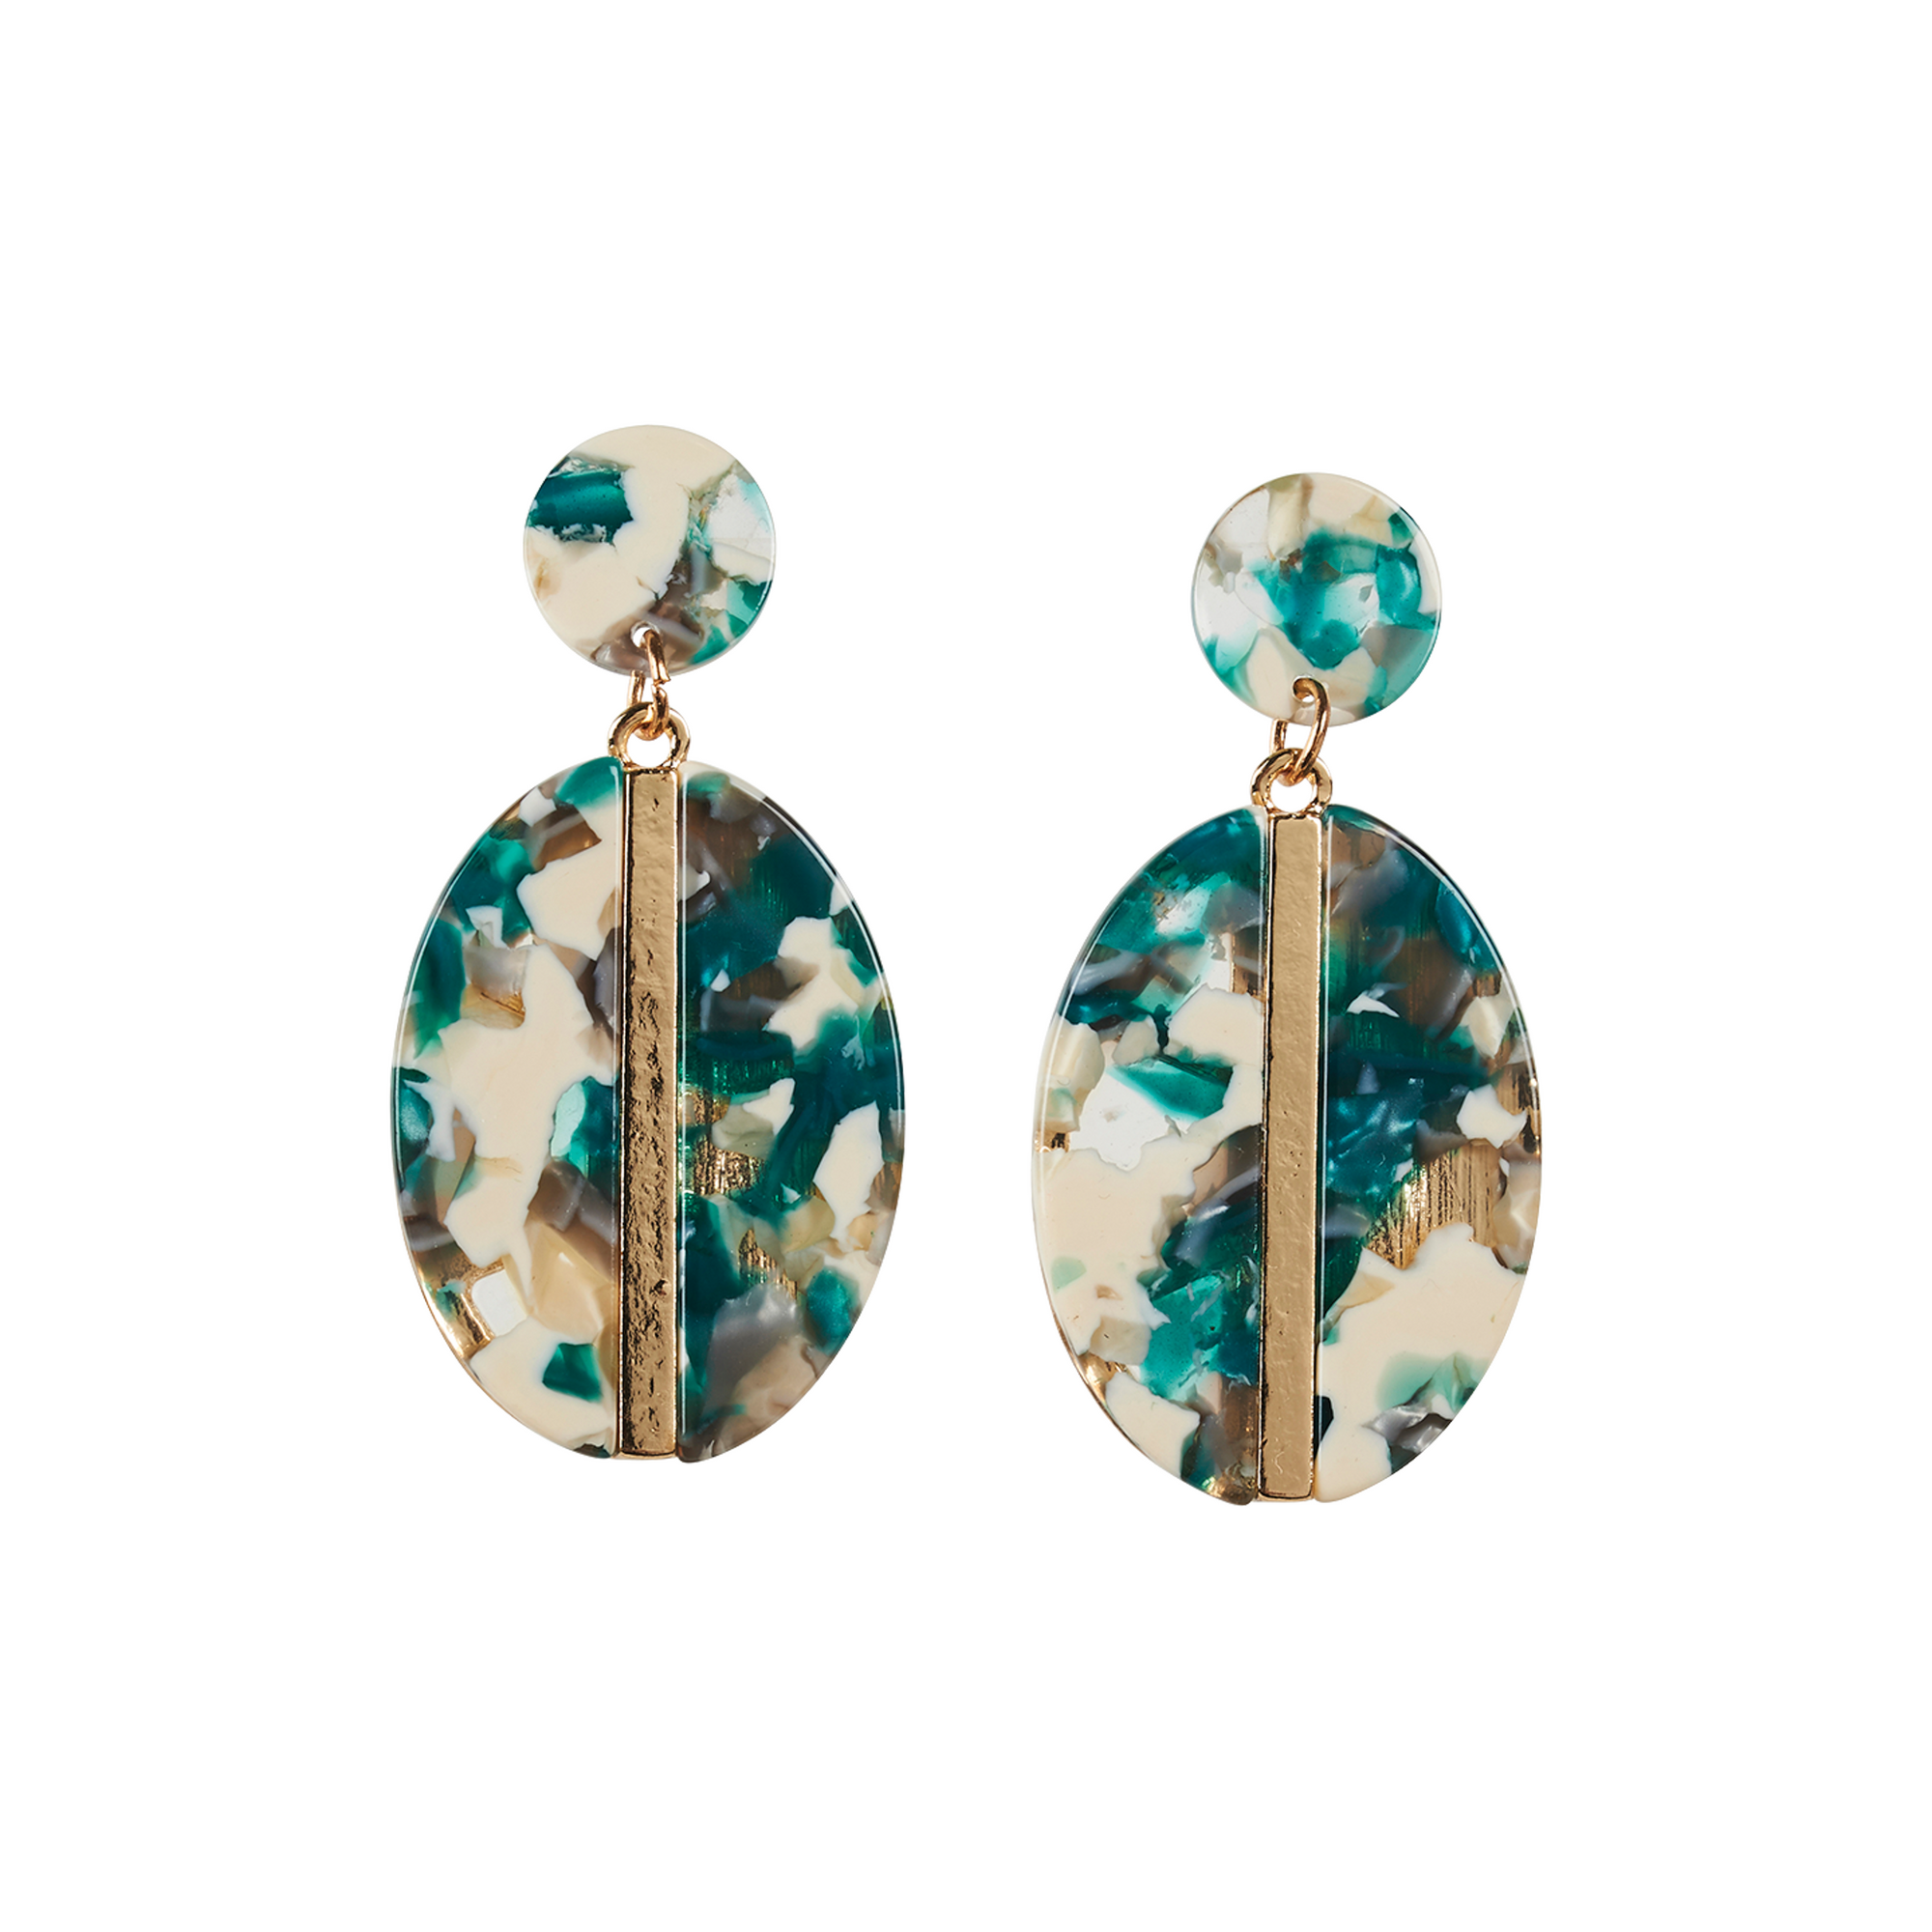 eb&ive Zena Oval Earrings in Jadestone